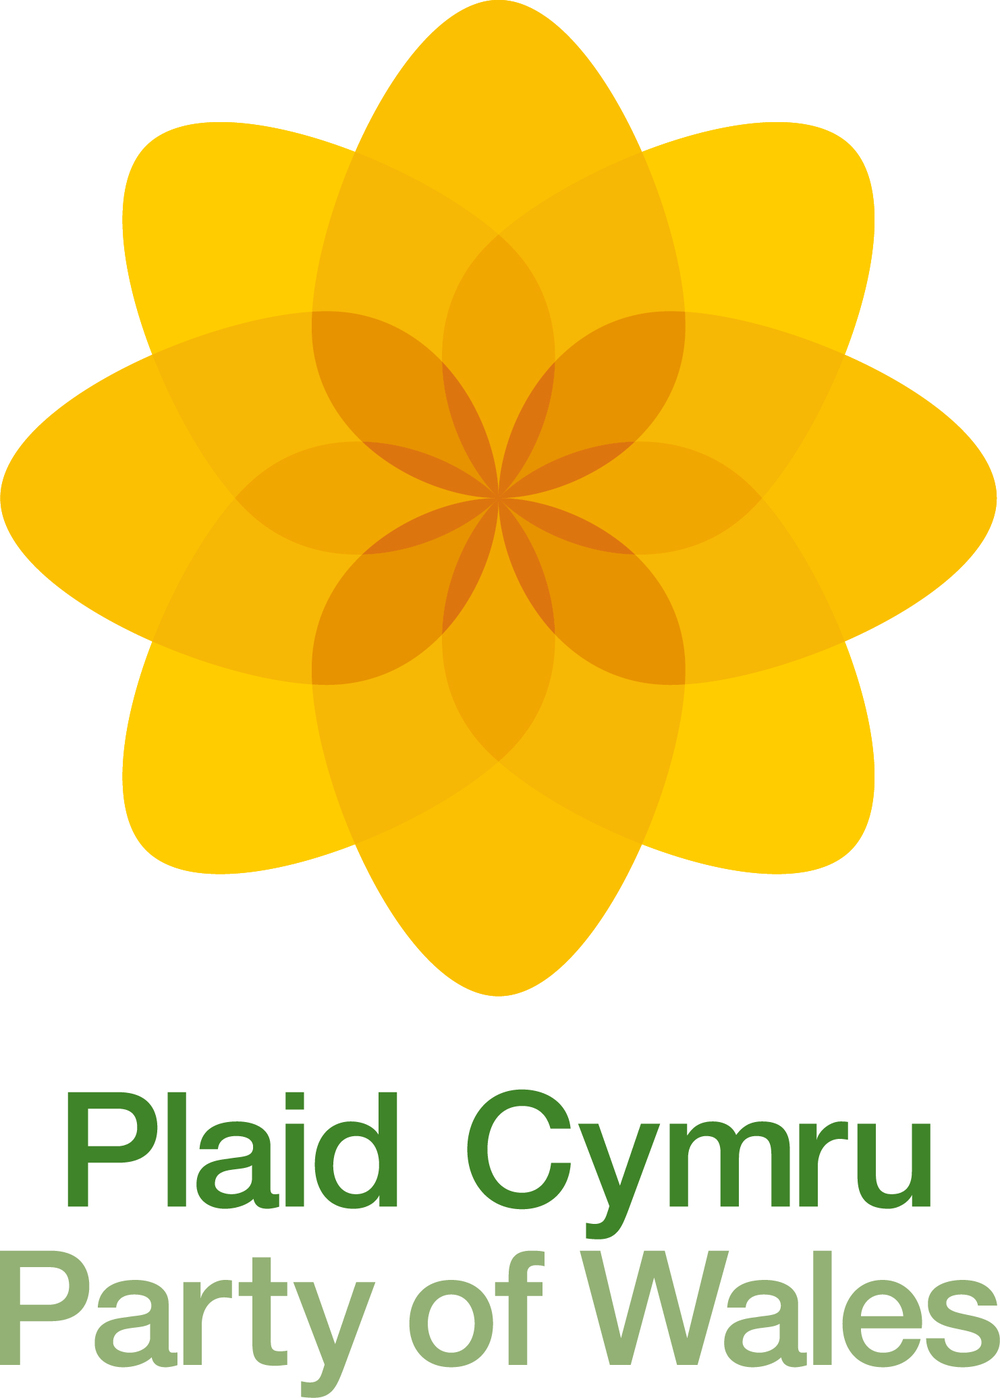 Plaid Cymru Party of Wales